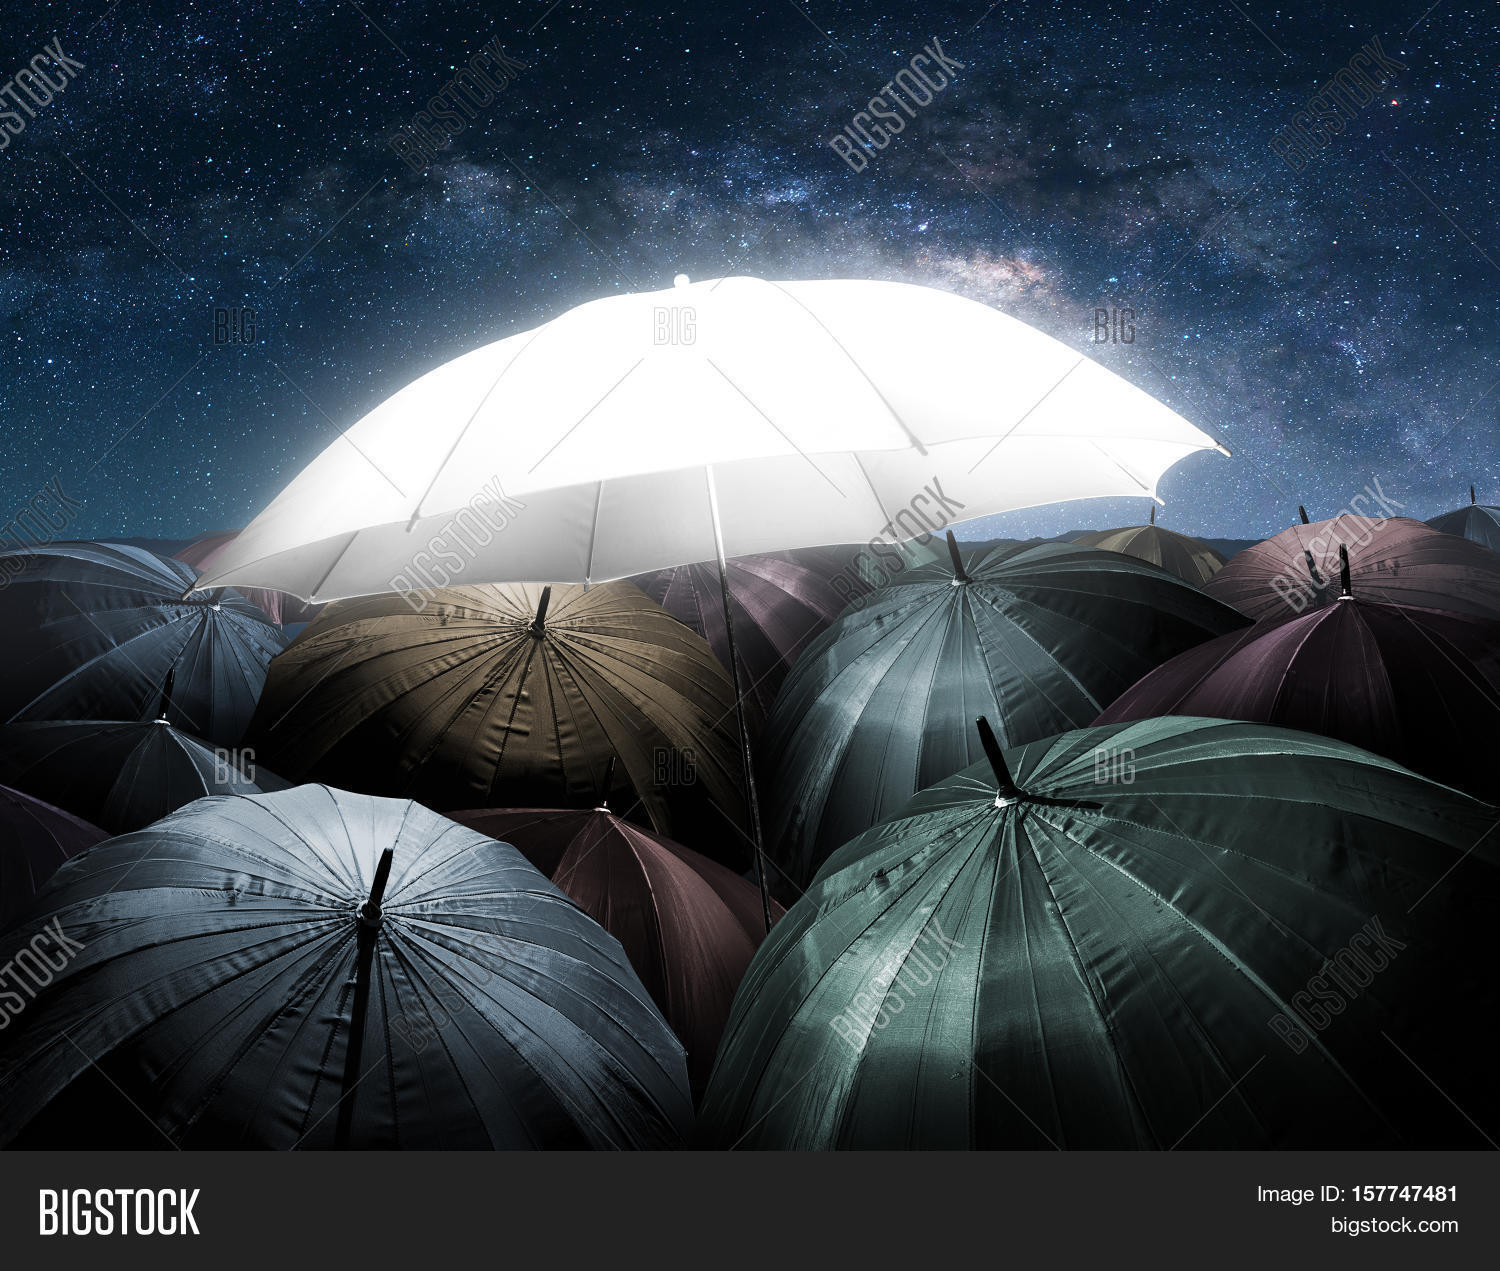 Umbrella Lights Image & Photo (Free Trial) | Bigstock